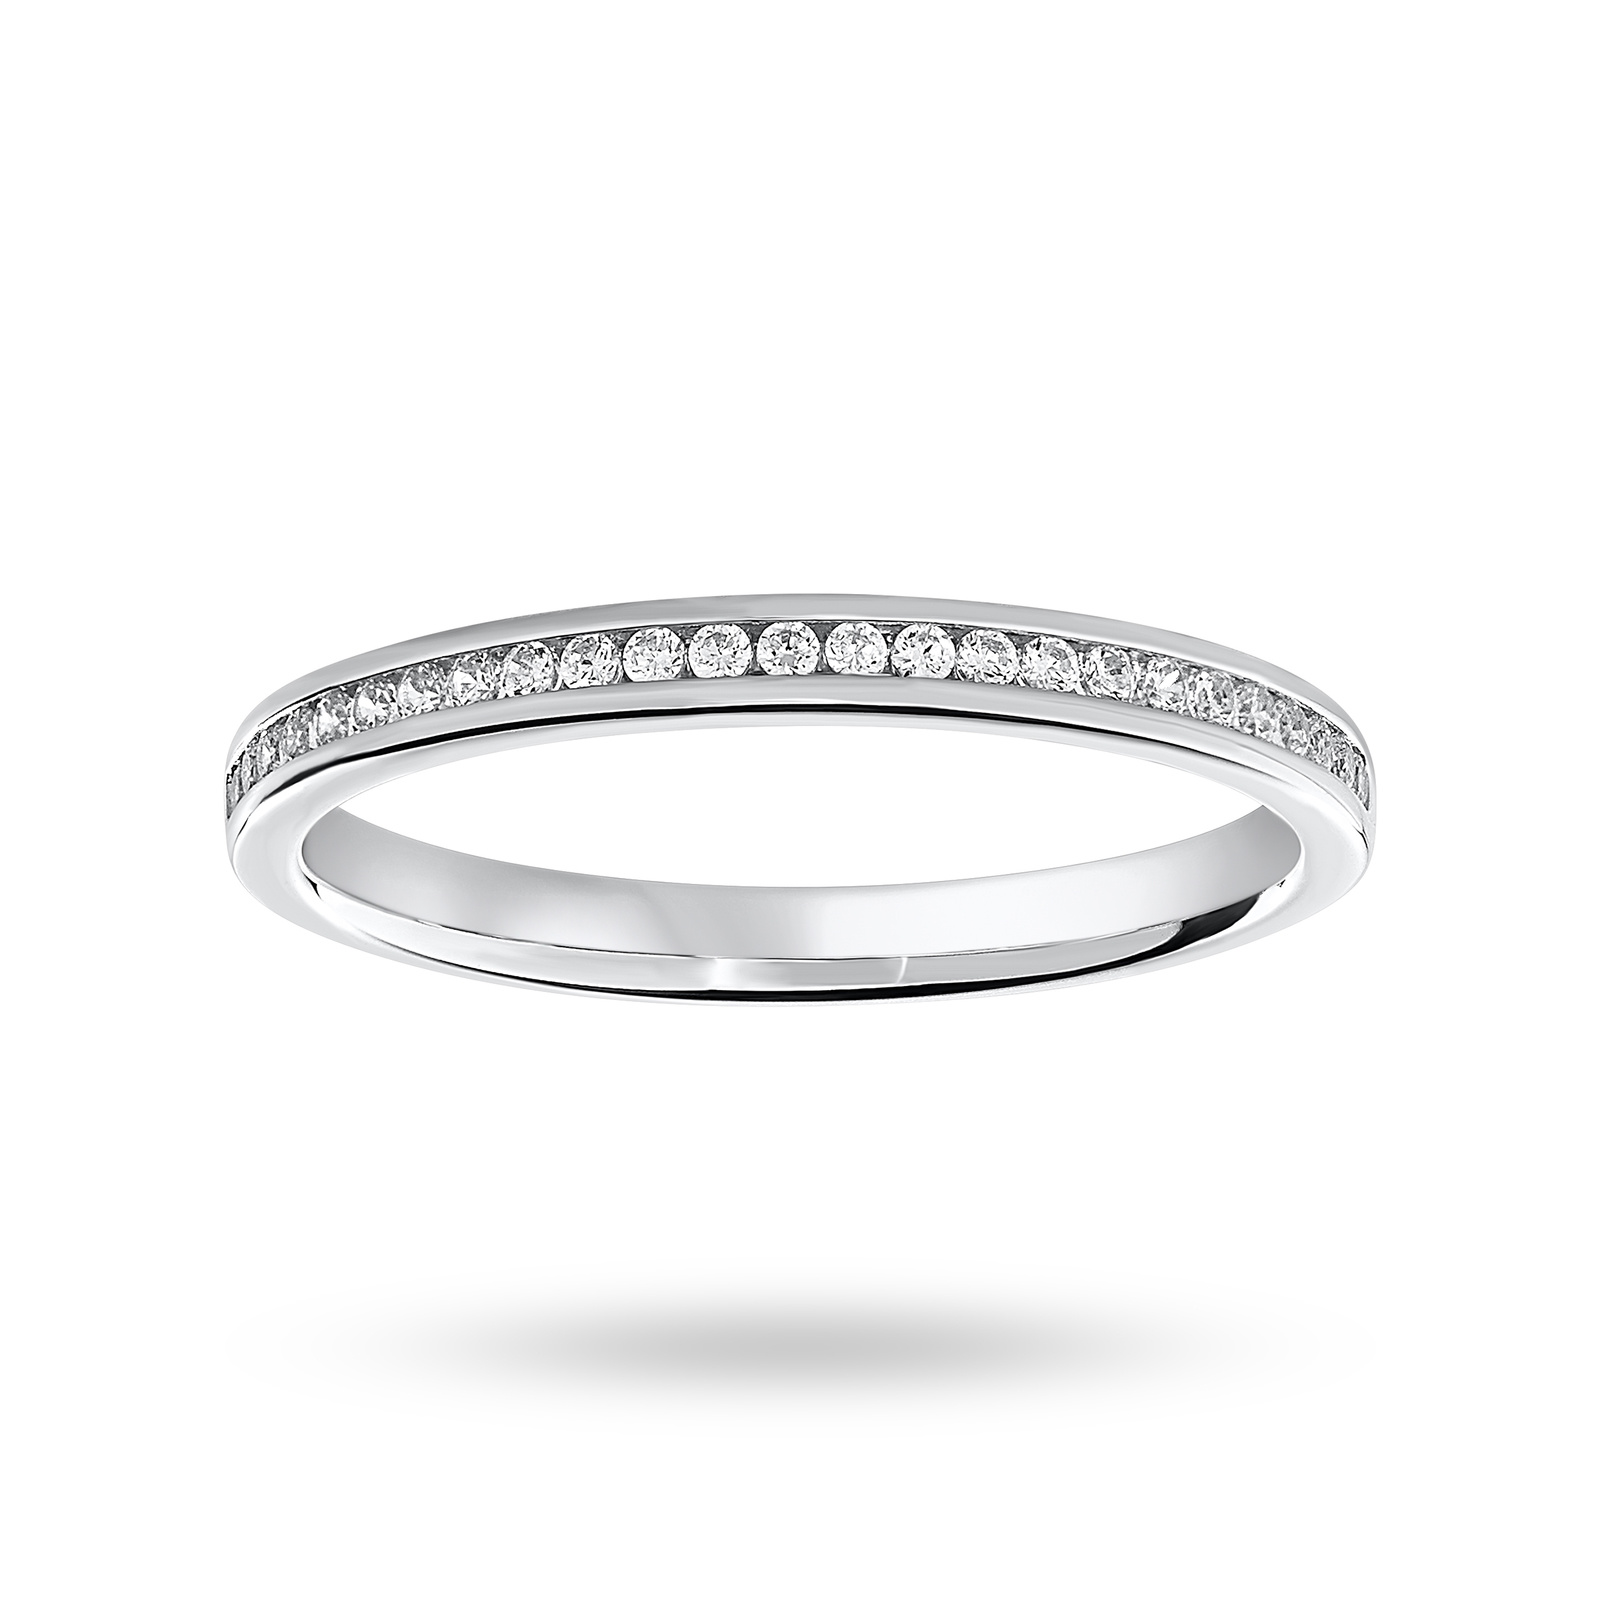 Platinum 0.12cttw Diamond Half Eternity Ring